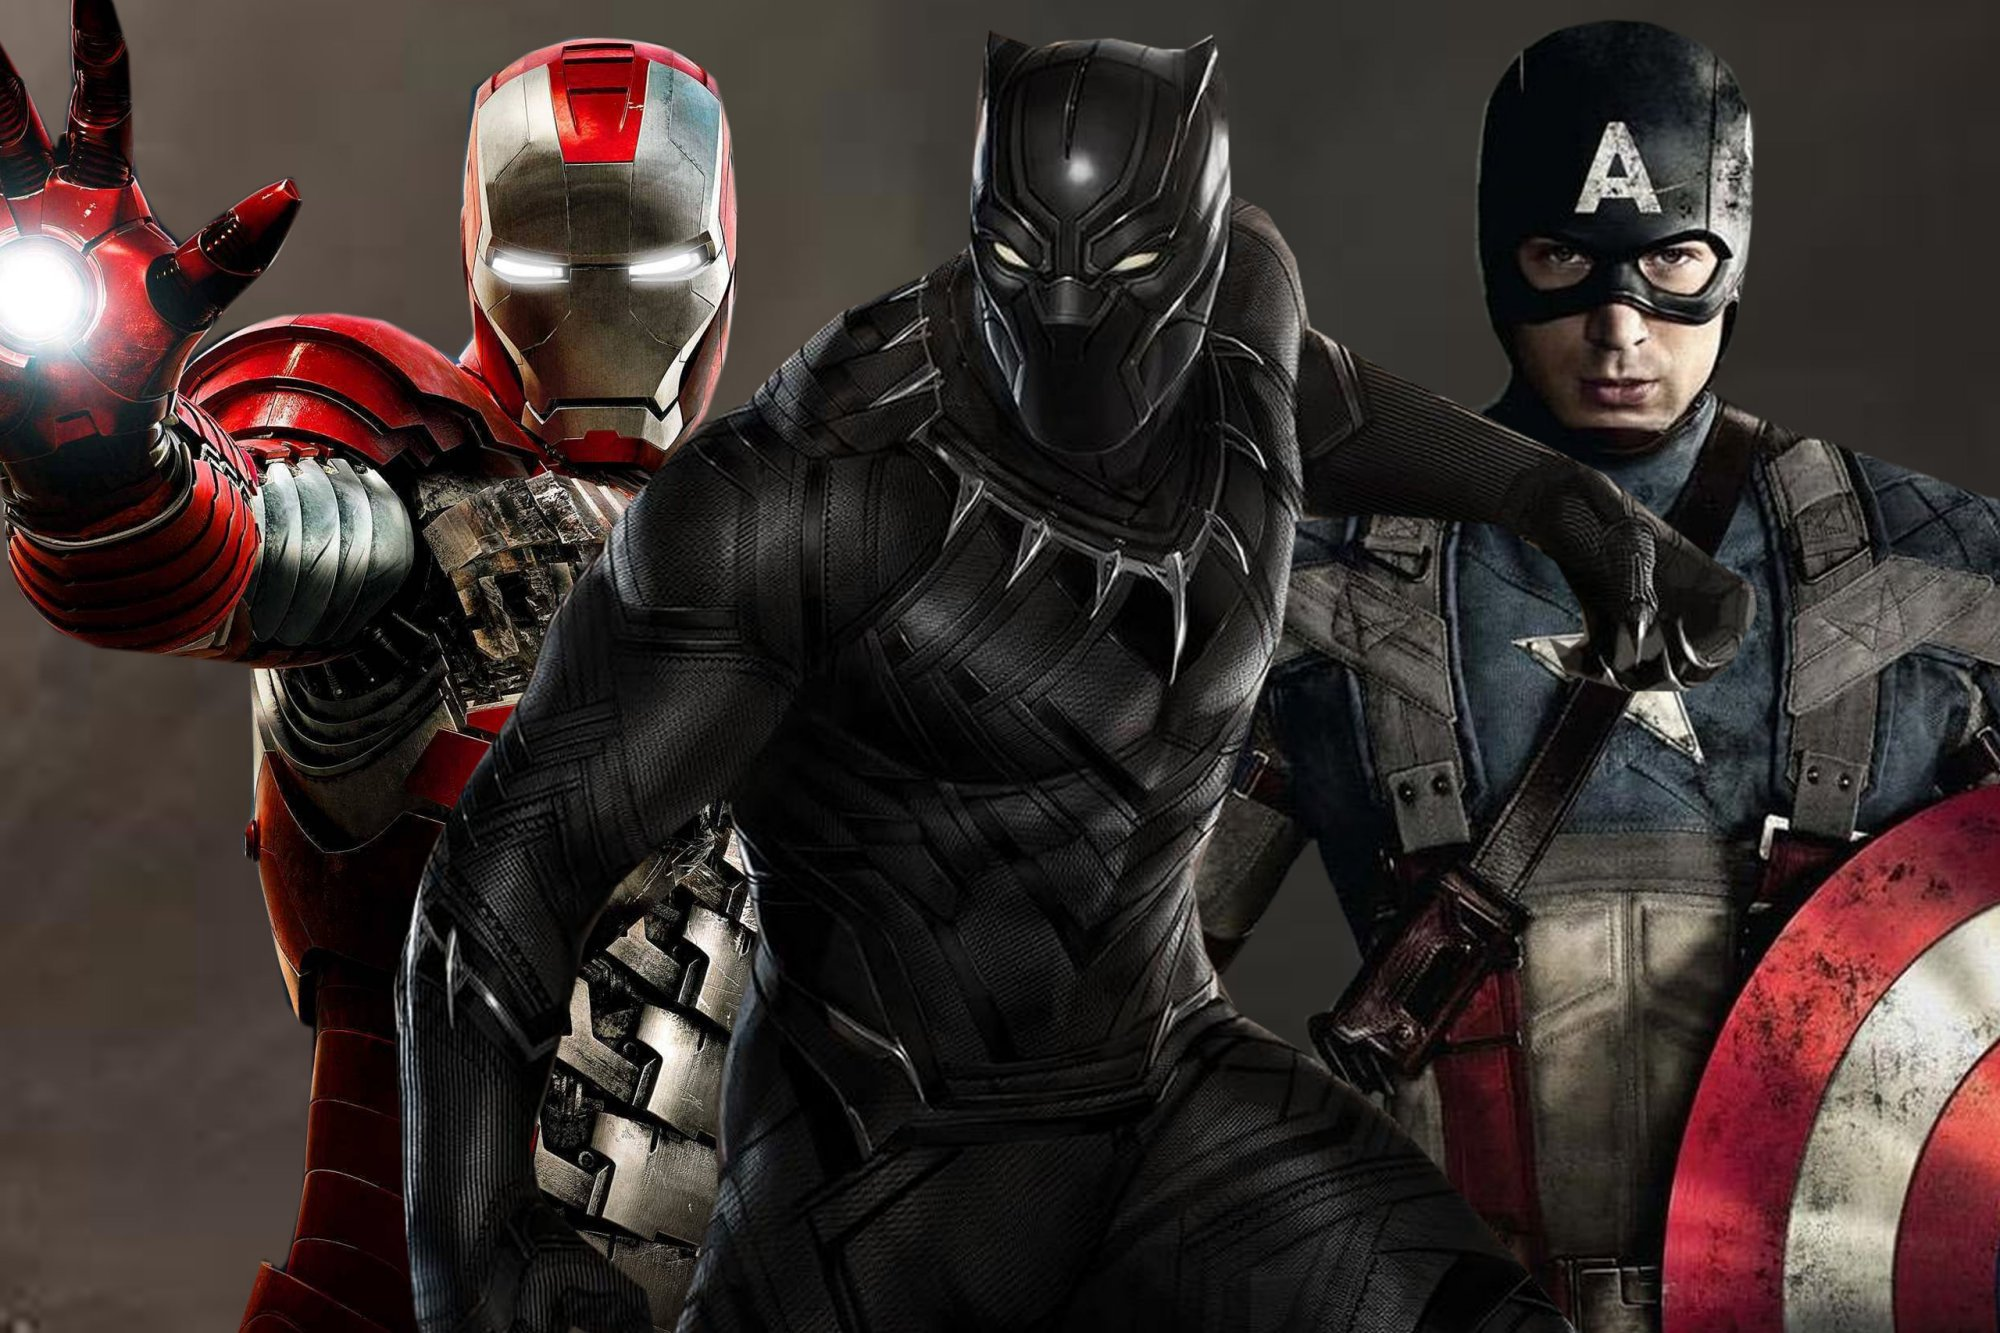 black panther movies images photos pictures backgrounds